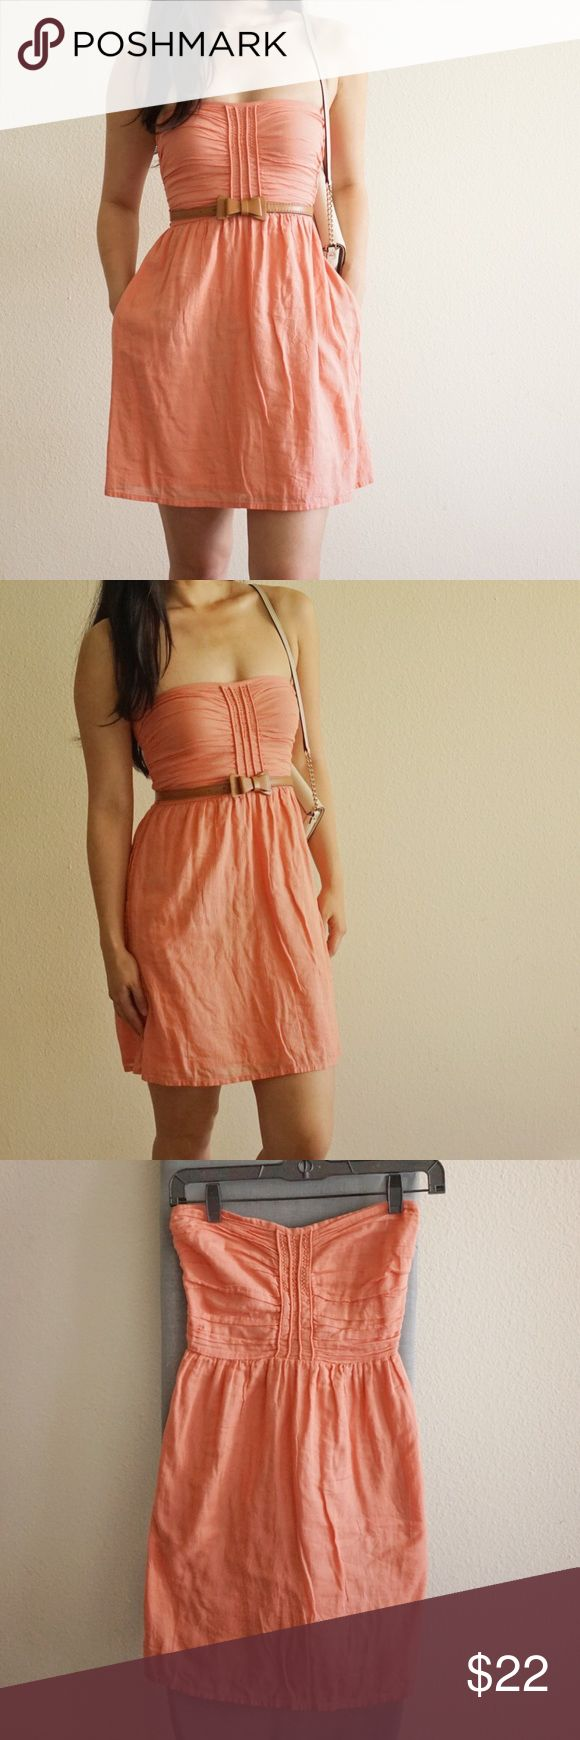 ZARA salmon pink strapless summer dress A refreshing cotton dress for hot summer days by Zara. Handy pockets on the side. True to size. Great condition. Zara Dresses Strapless